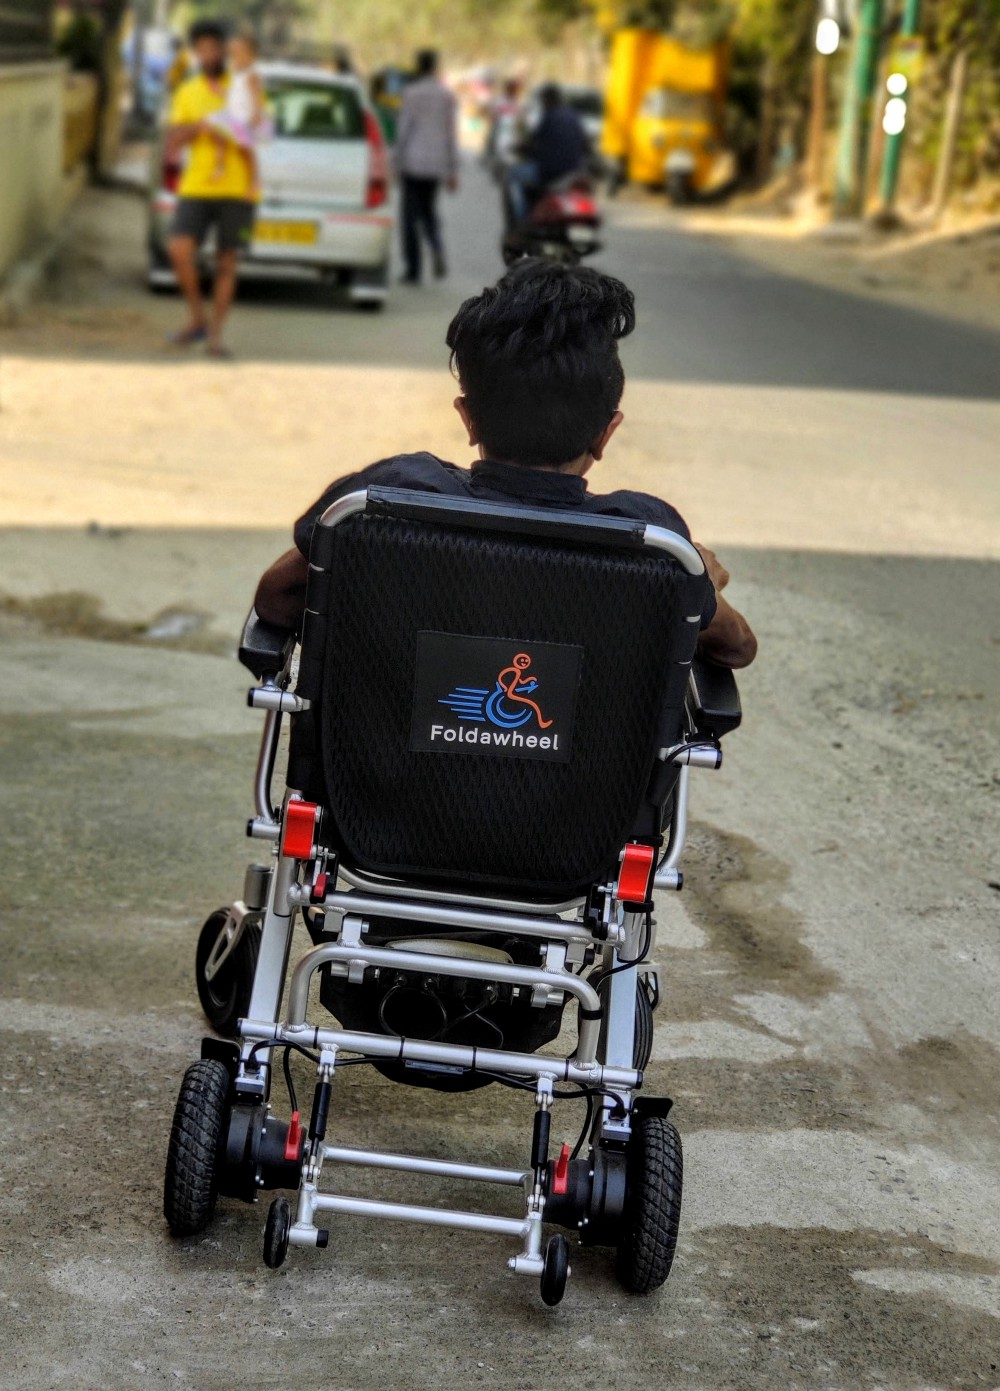 A person in a wheelchair with his back facing the camera. He is on the road, moving ahead in life